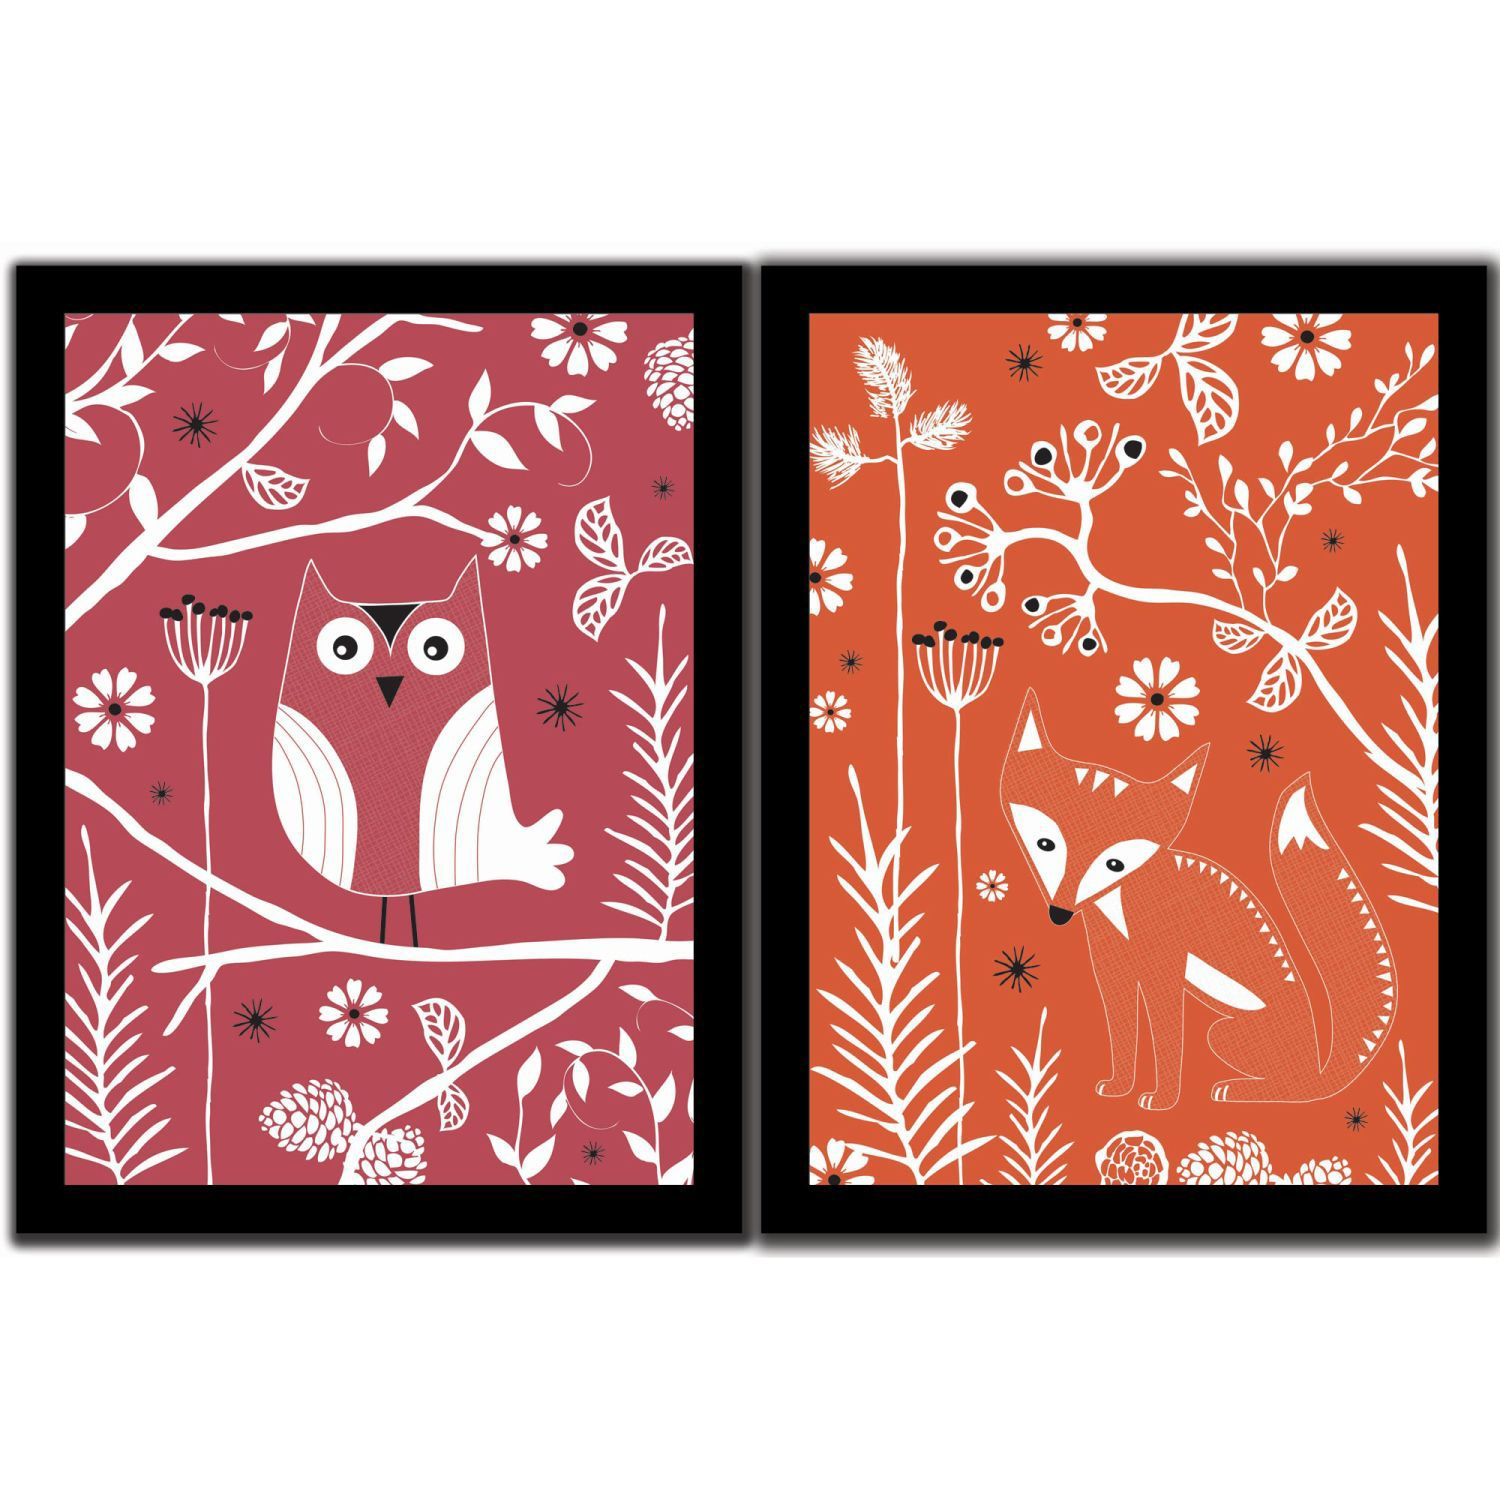 Fox & owl duo wallart